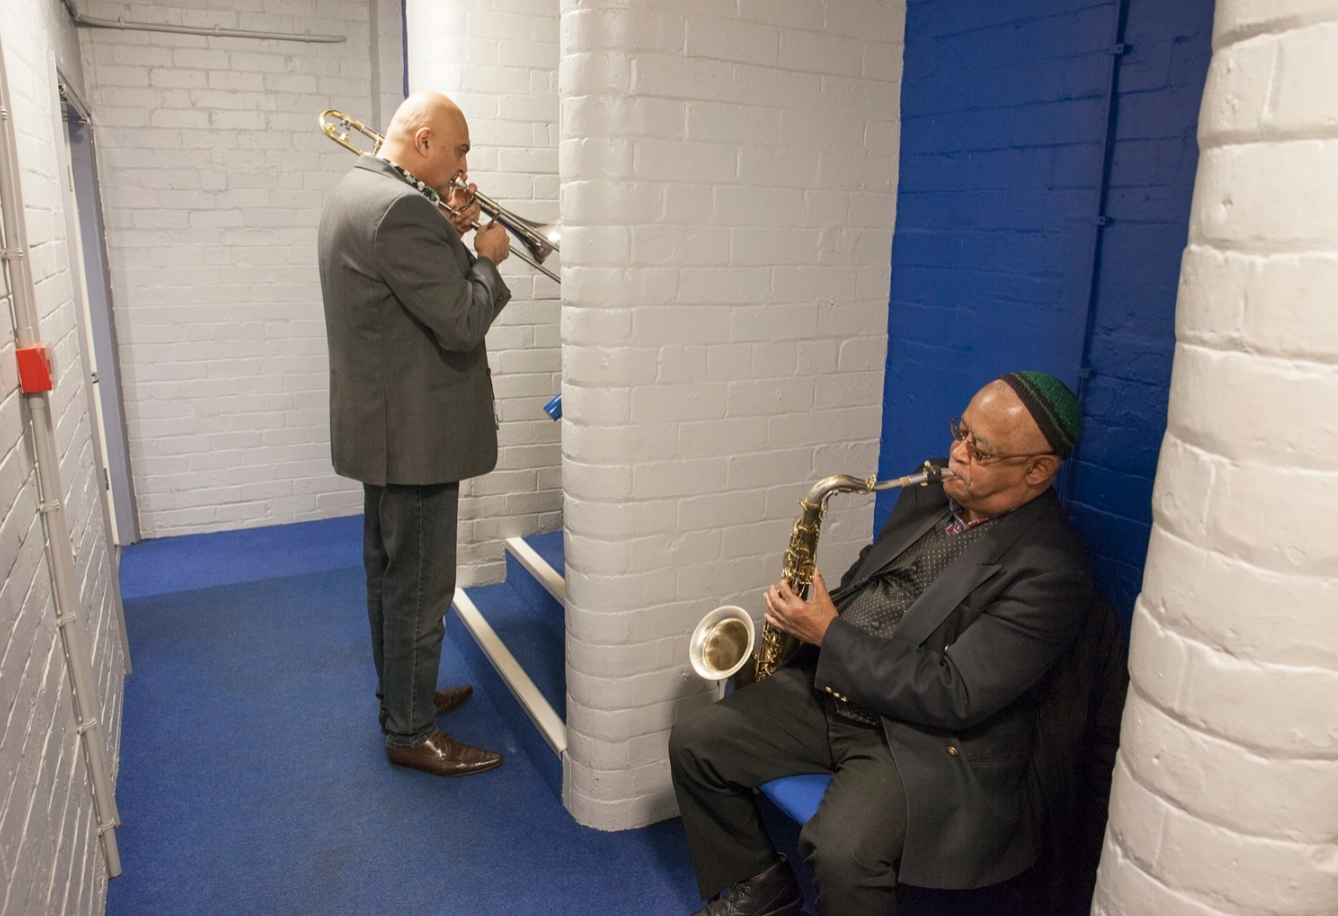 The horn section of Jools Holland's Rhythm and Blues Orchestra warm up backstage